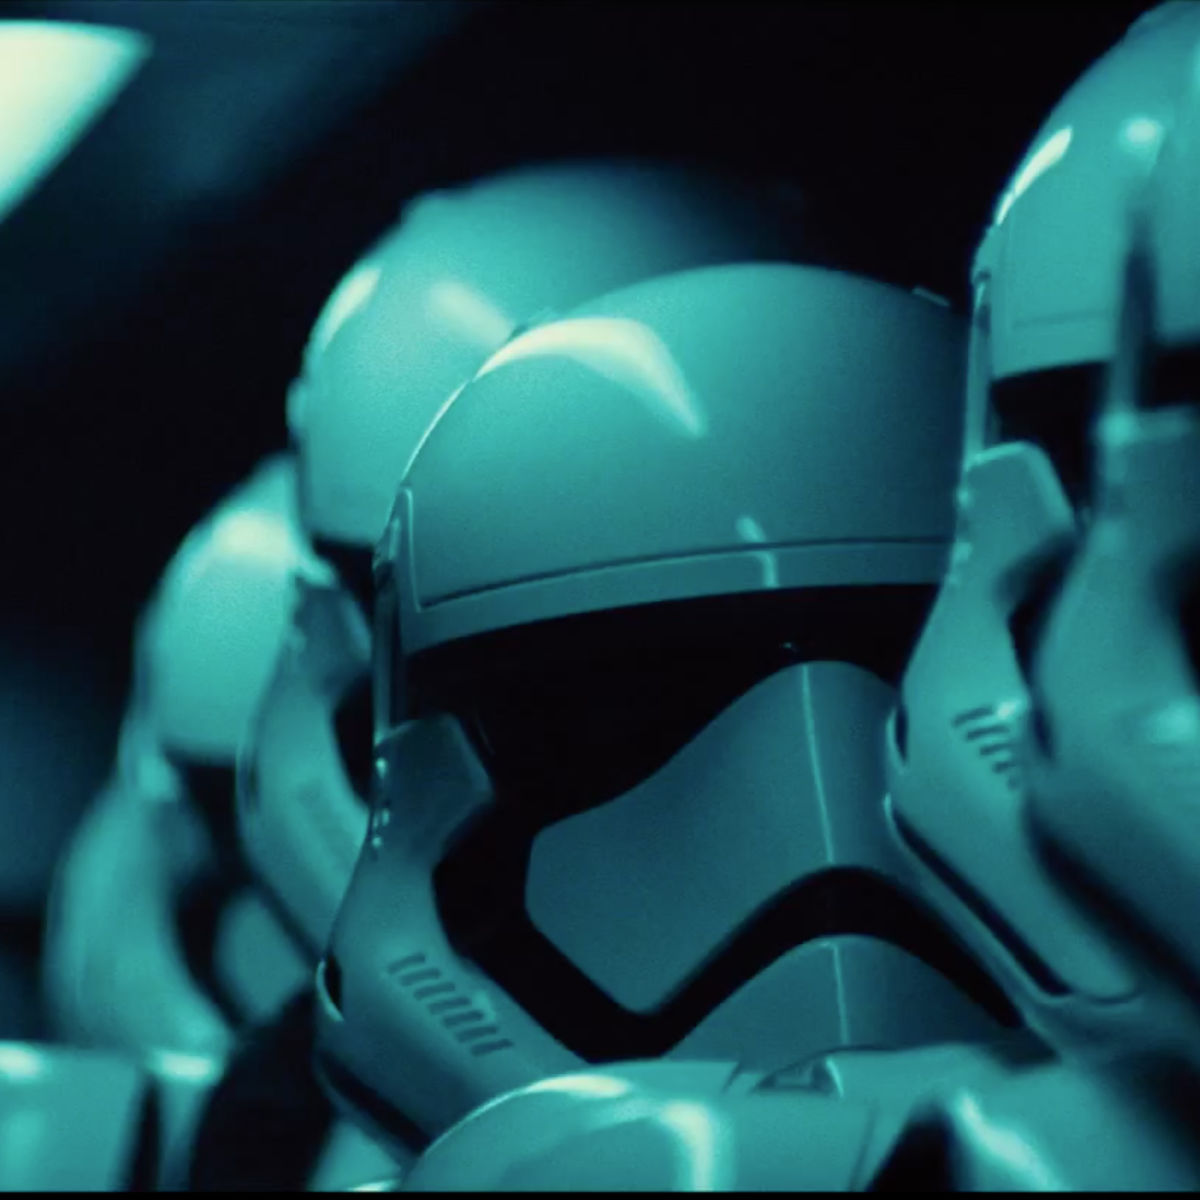 star_wars_force_awakens_stormtroopers.jpg